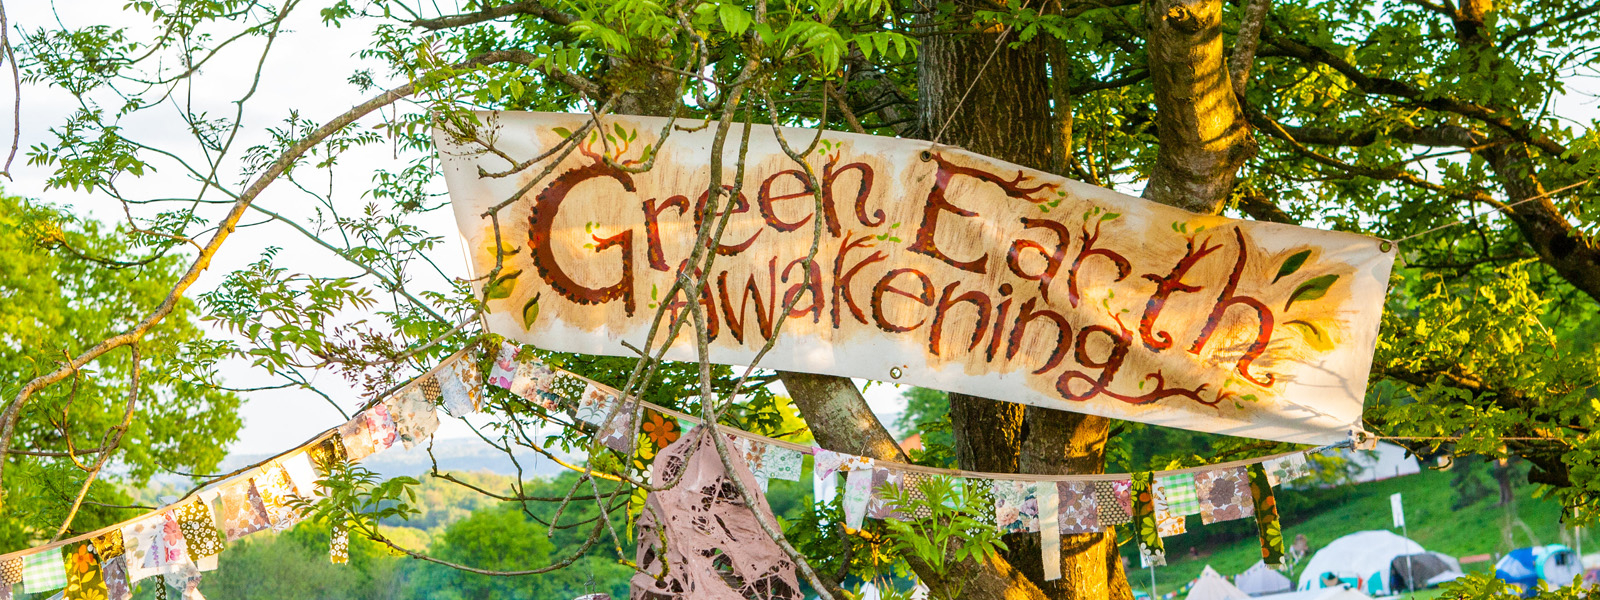 Green Earth Awakening Banner